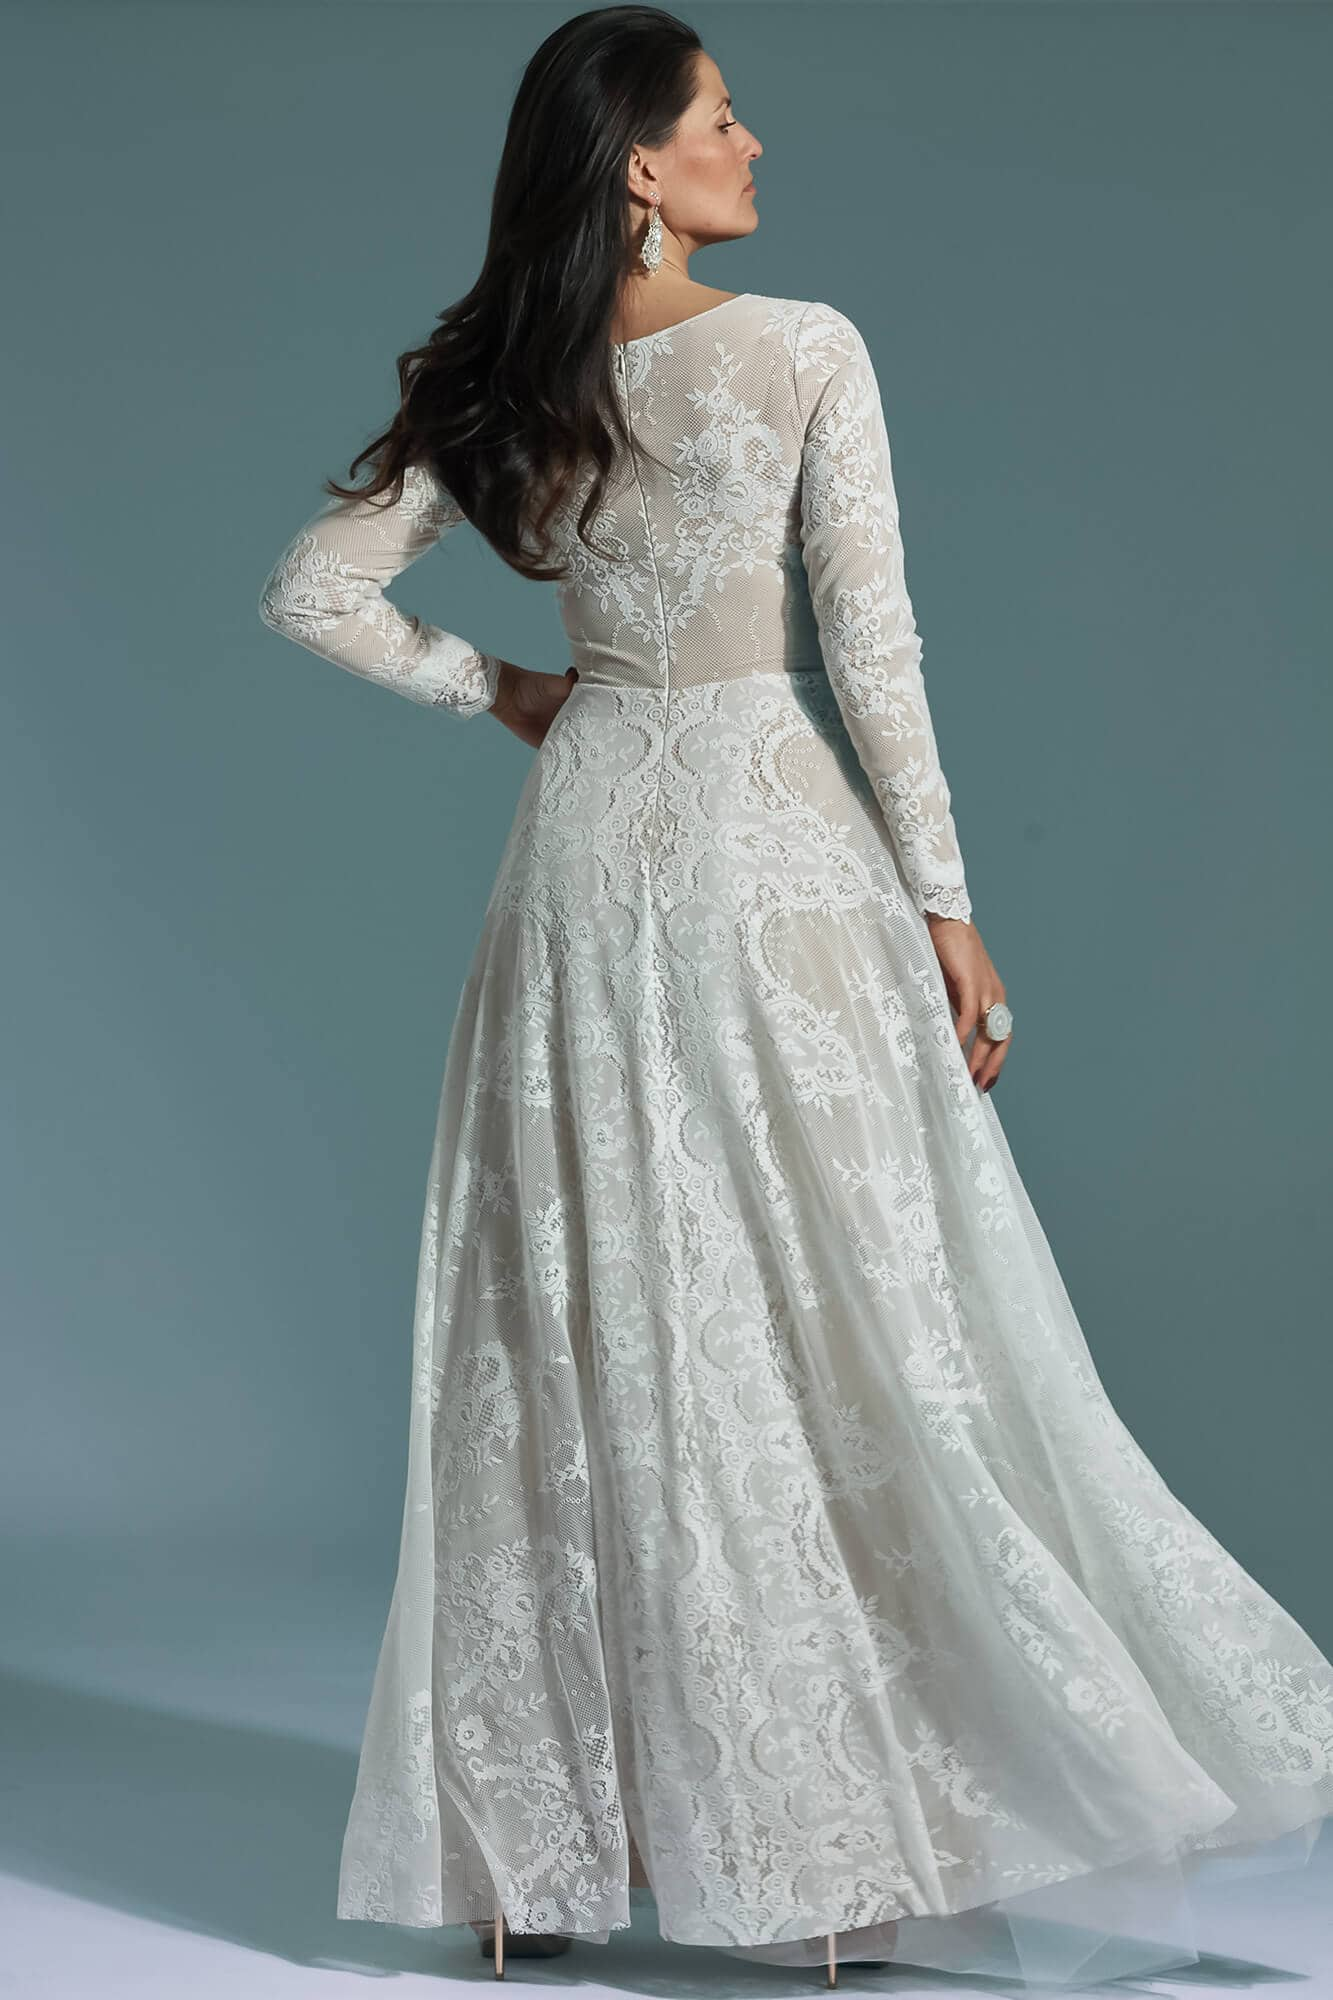 Lace modest wedding dress with long sleeves Porto 61